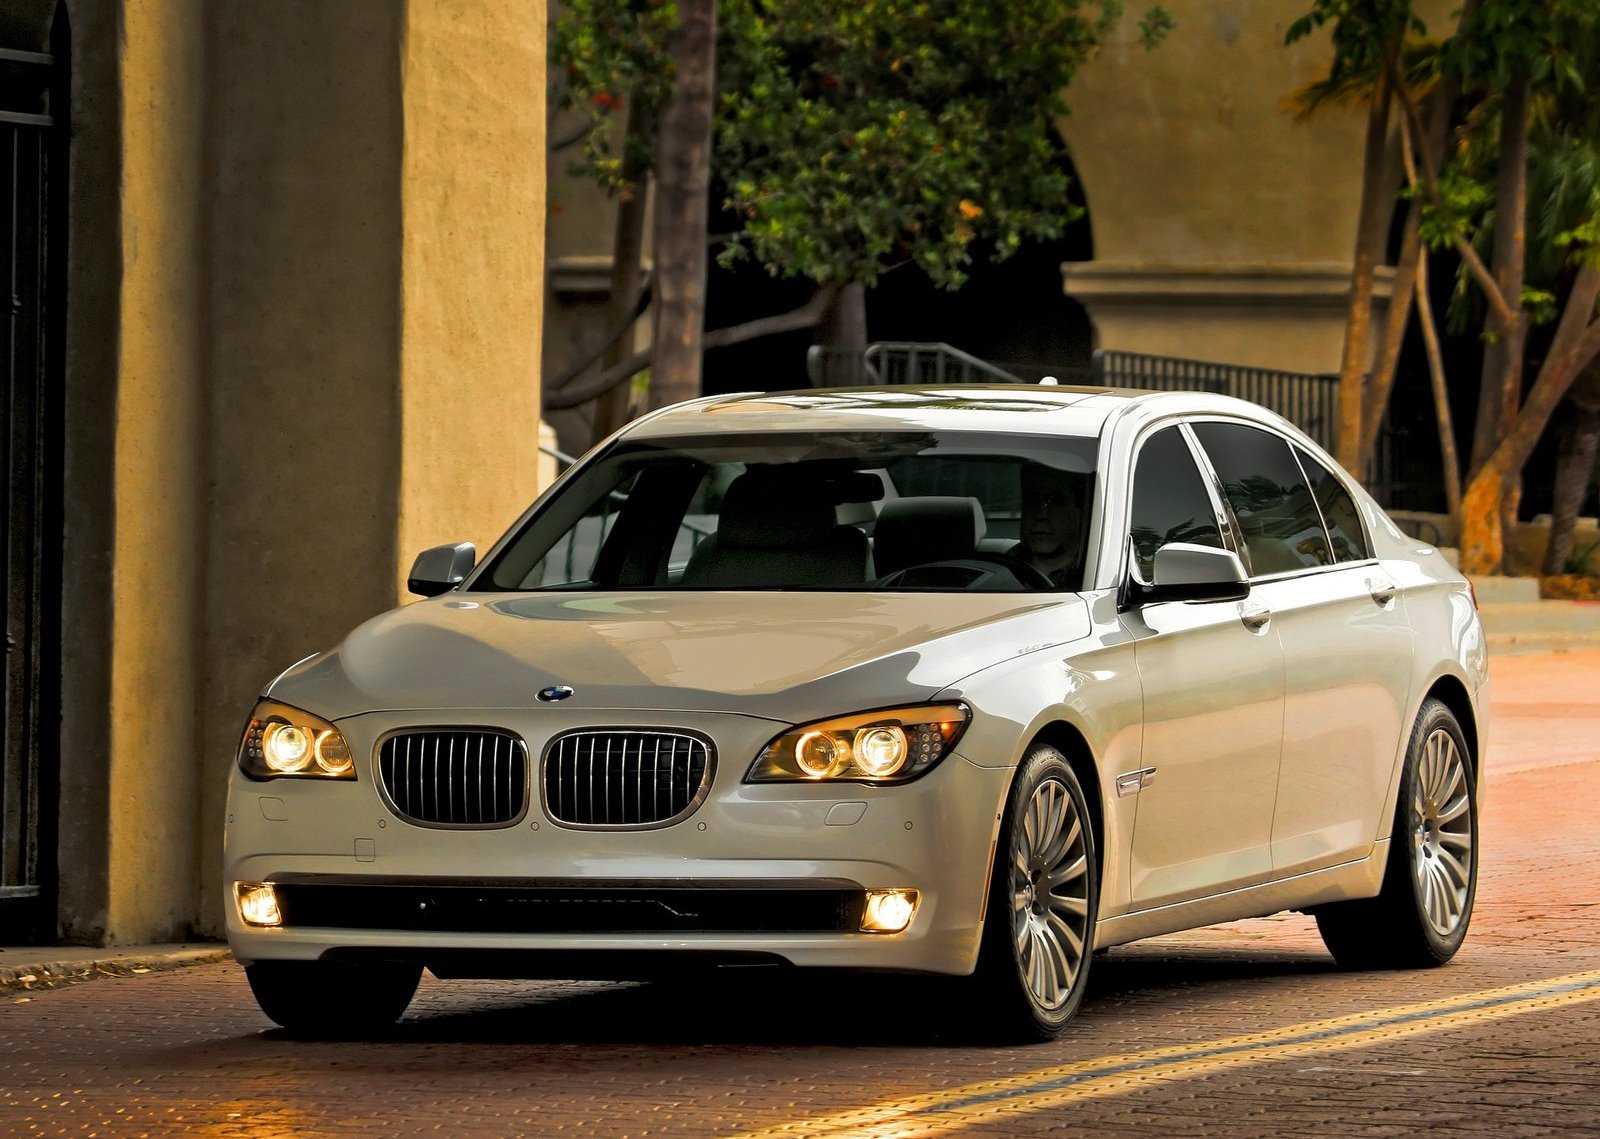 Bmw-7_series_f01_f02_mp2_pic_81174